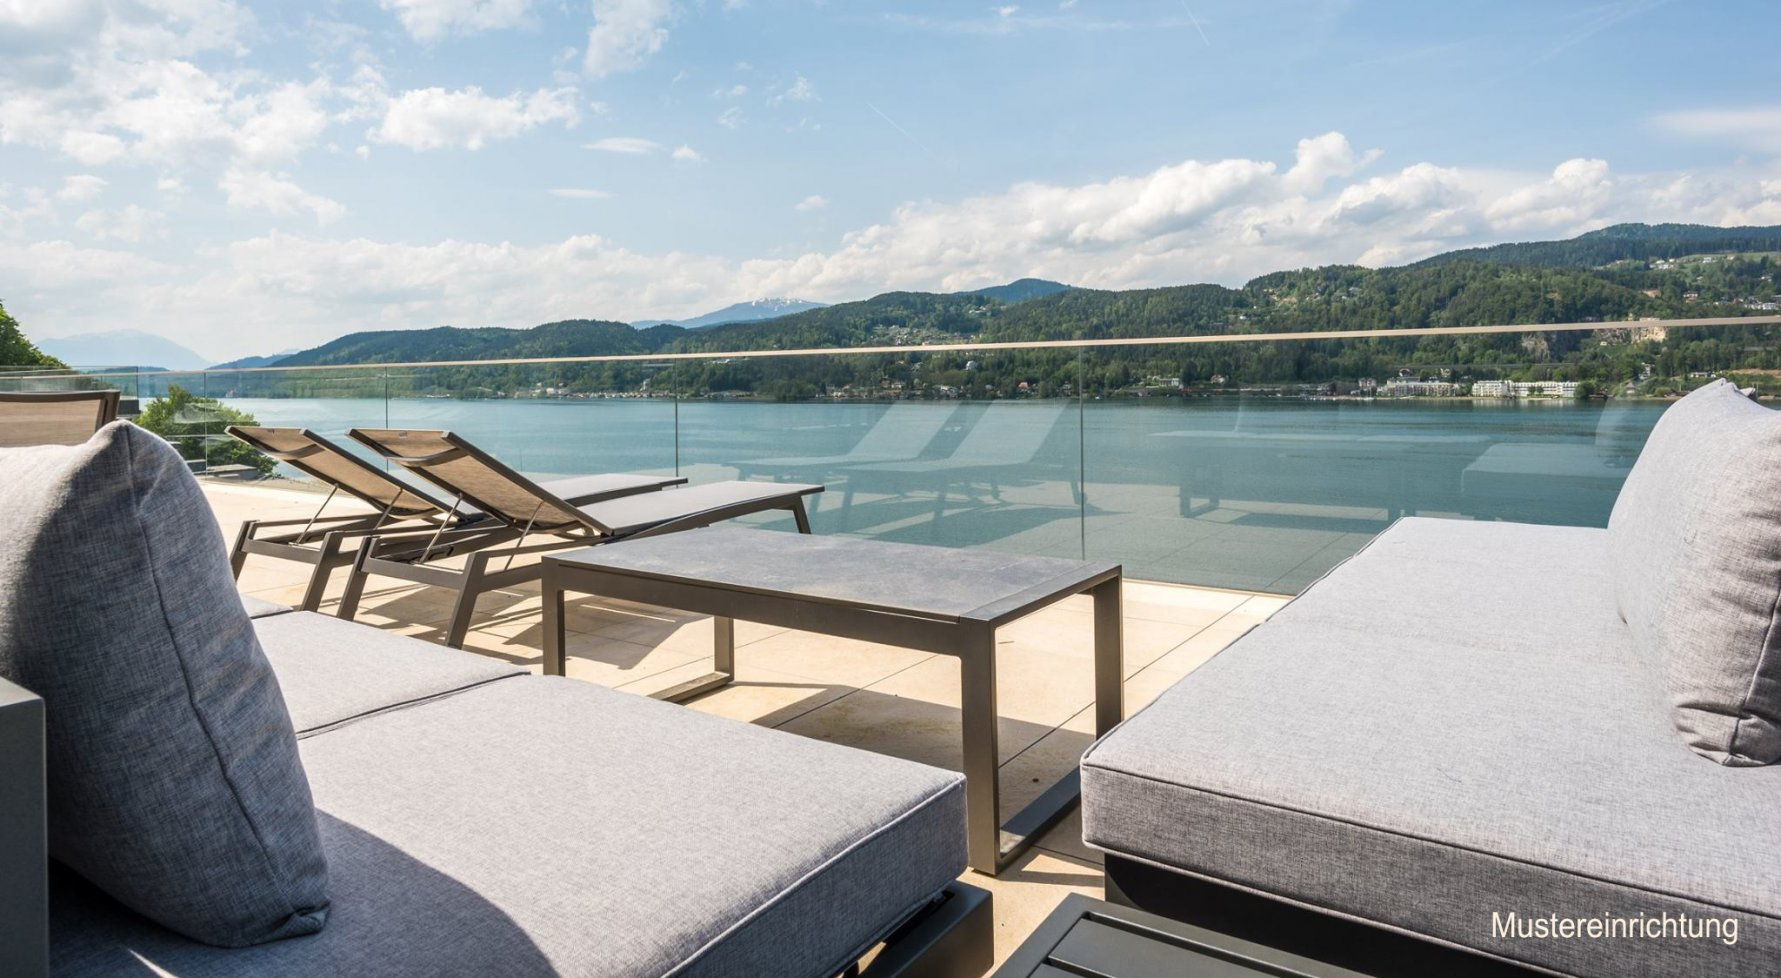 Property in 9082  Maria Wörth: WÖRTHERSEE: Exclusive apartment in luxury resort! - picture 1